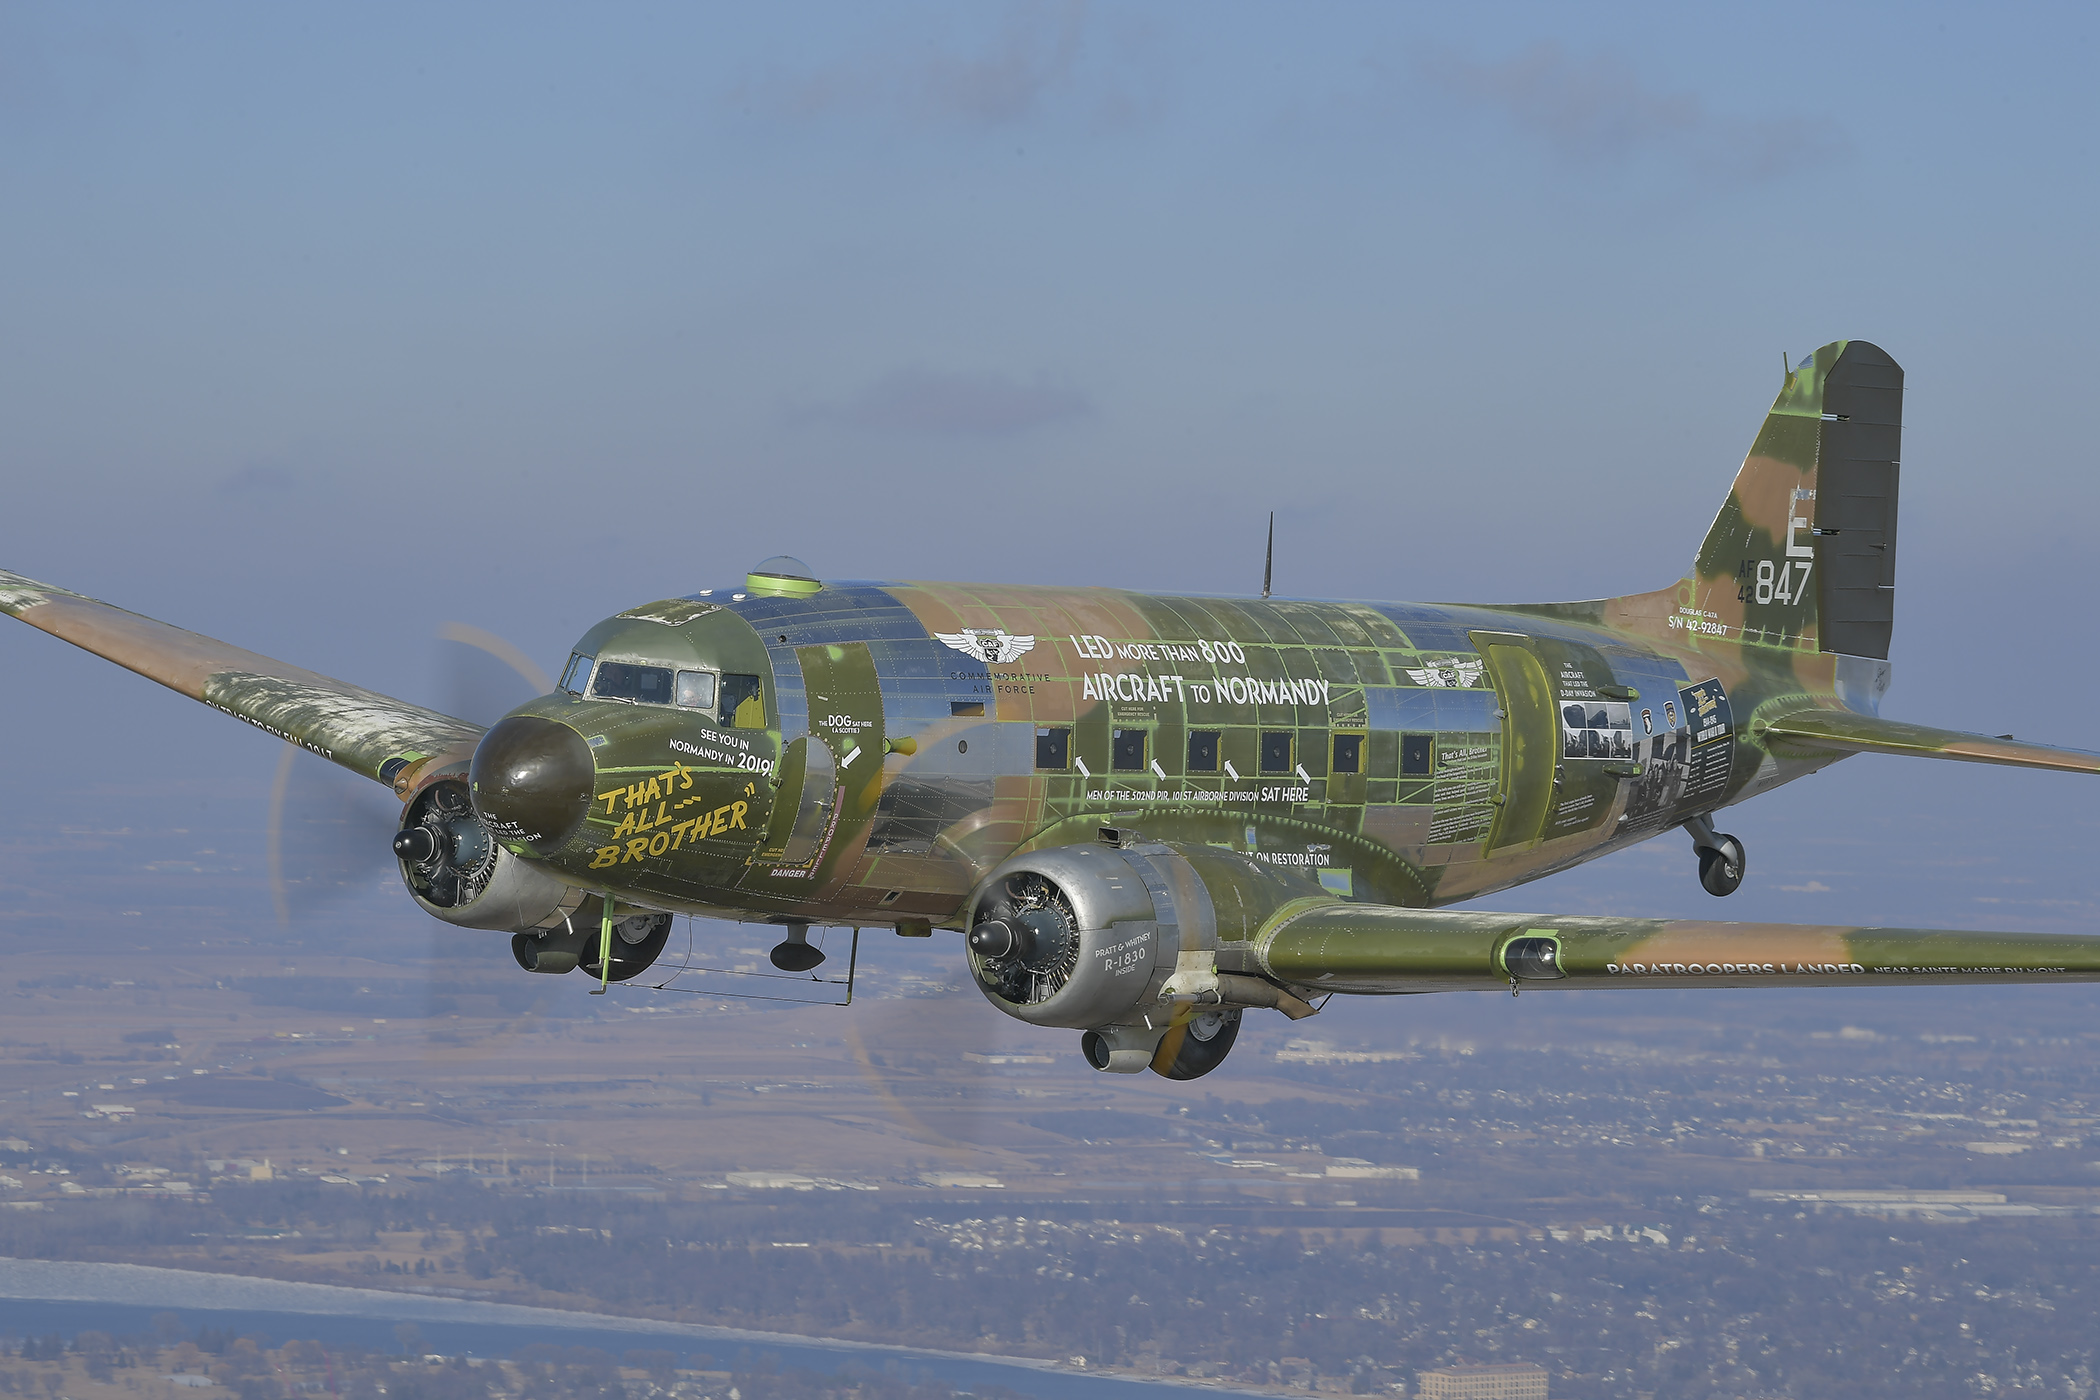 Thirty C-47s to invade Normandy for D-Day 75th - FLYER